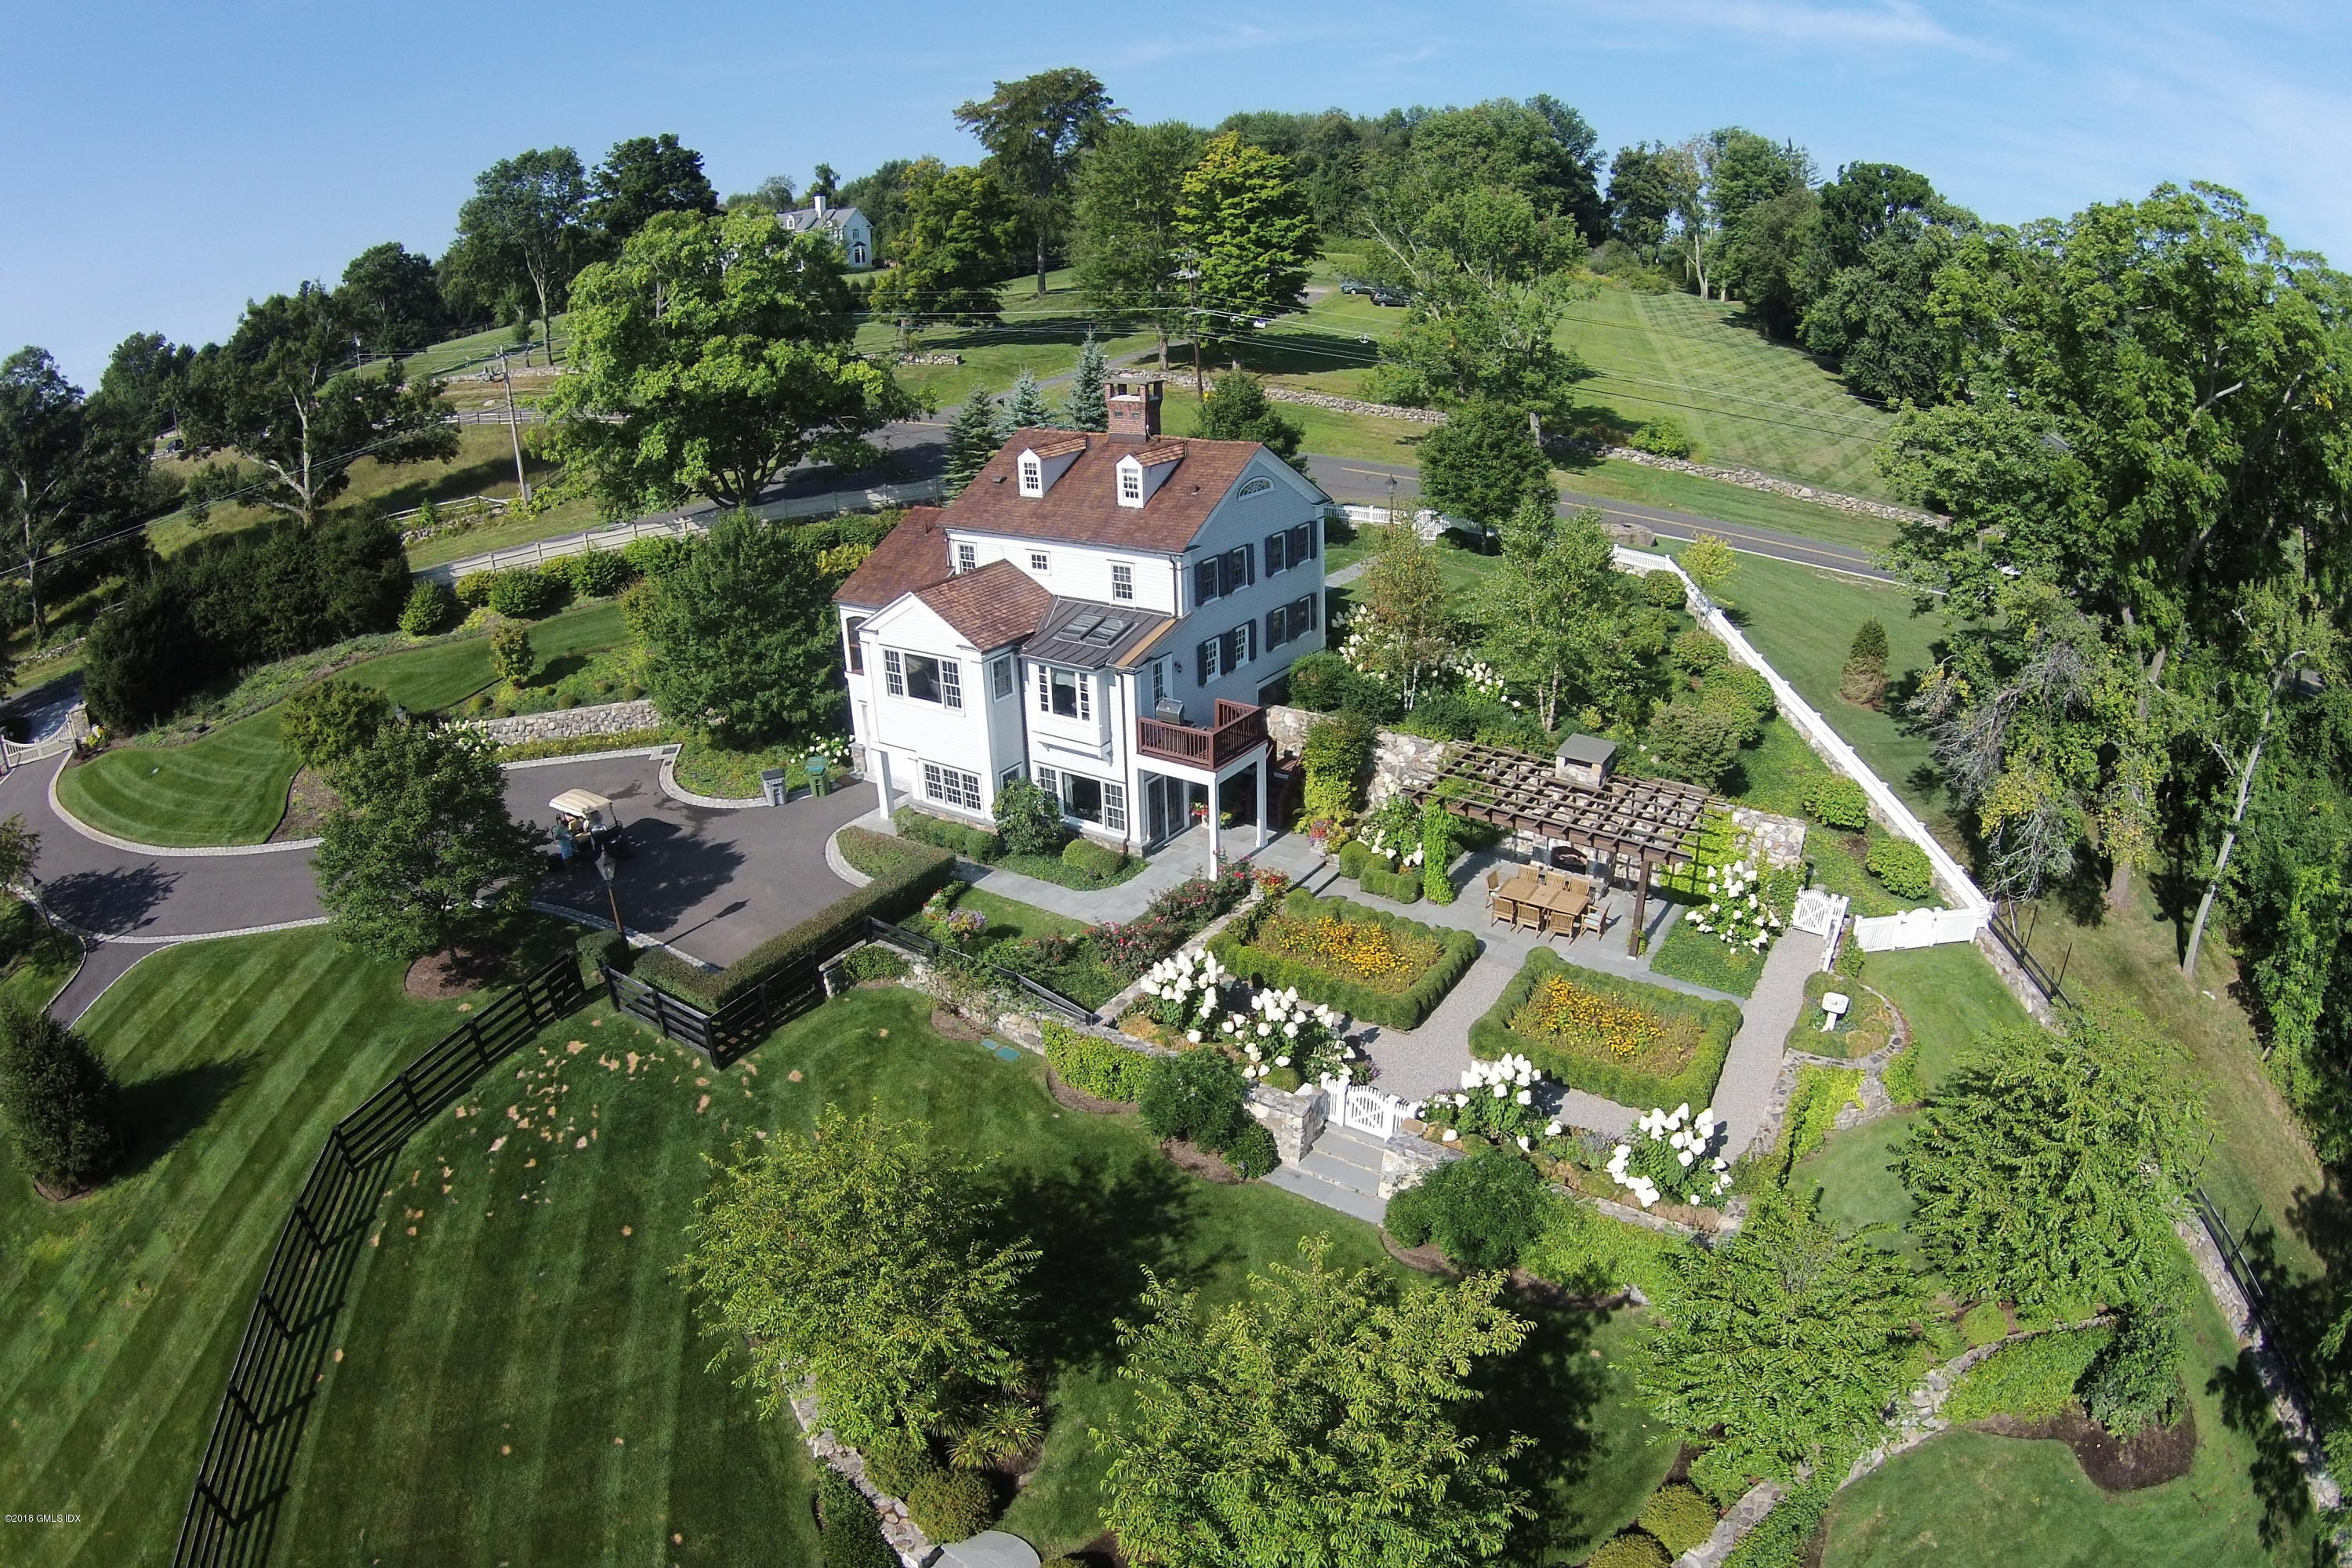 9 Old Stagecoach Road, Ridgefield, CT 06877